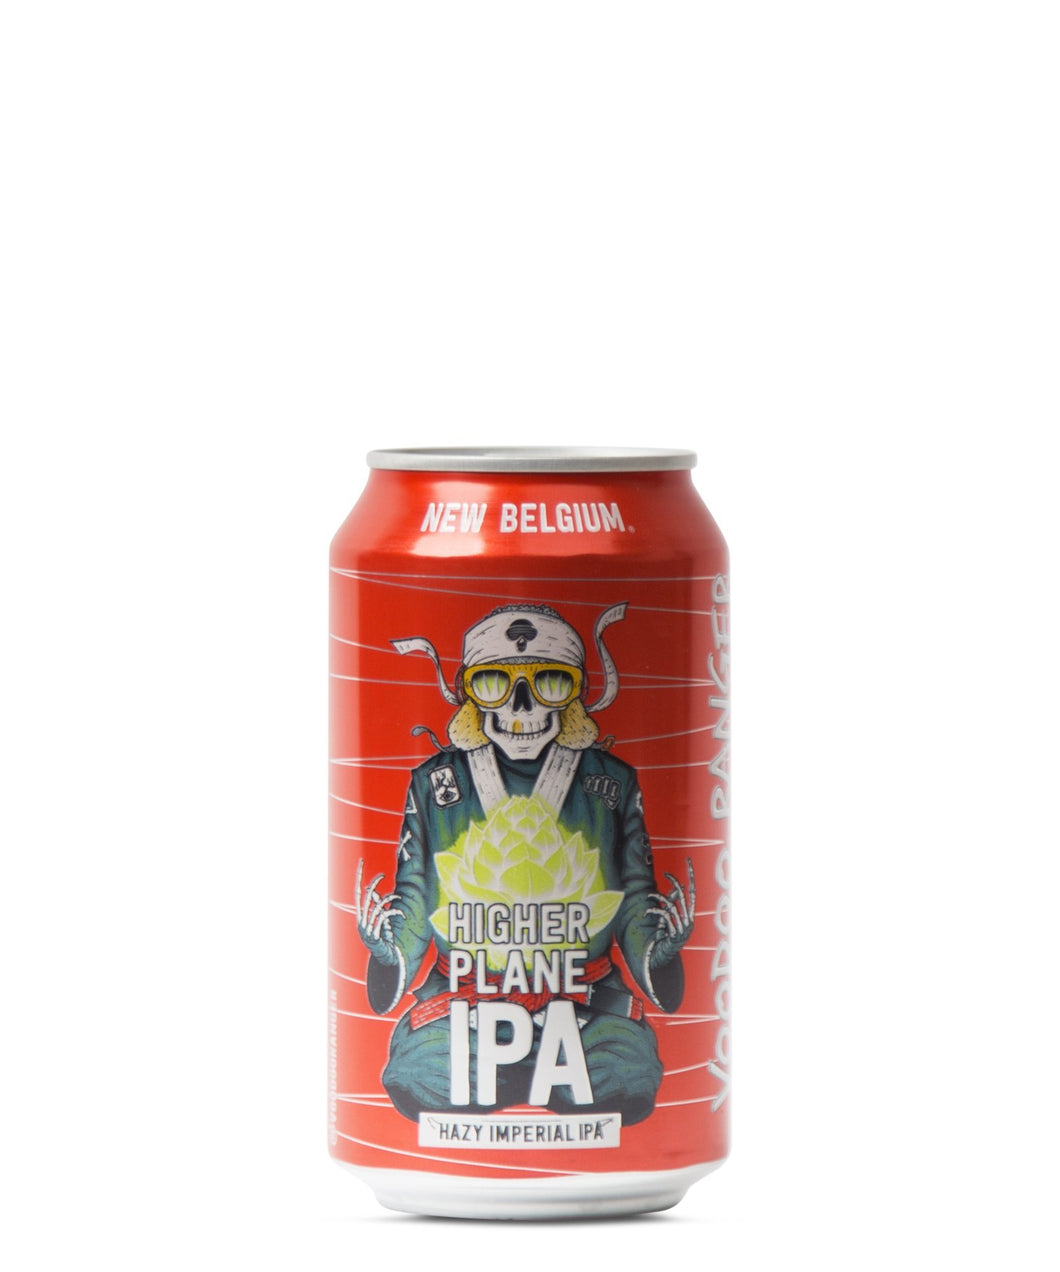 Voodoo Ranger Higher Plane IPA - New Belgium Brewing Delivered By TapRm